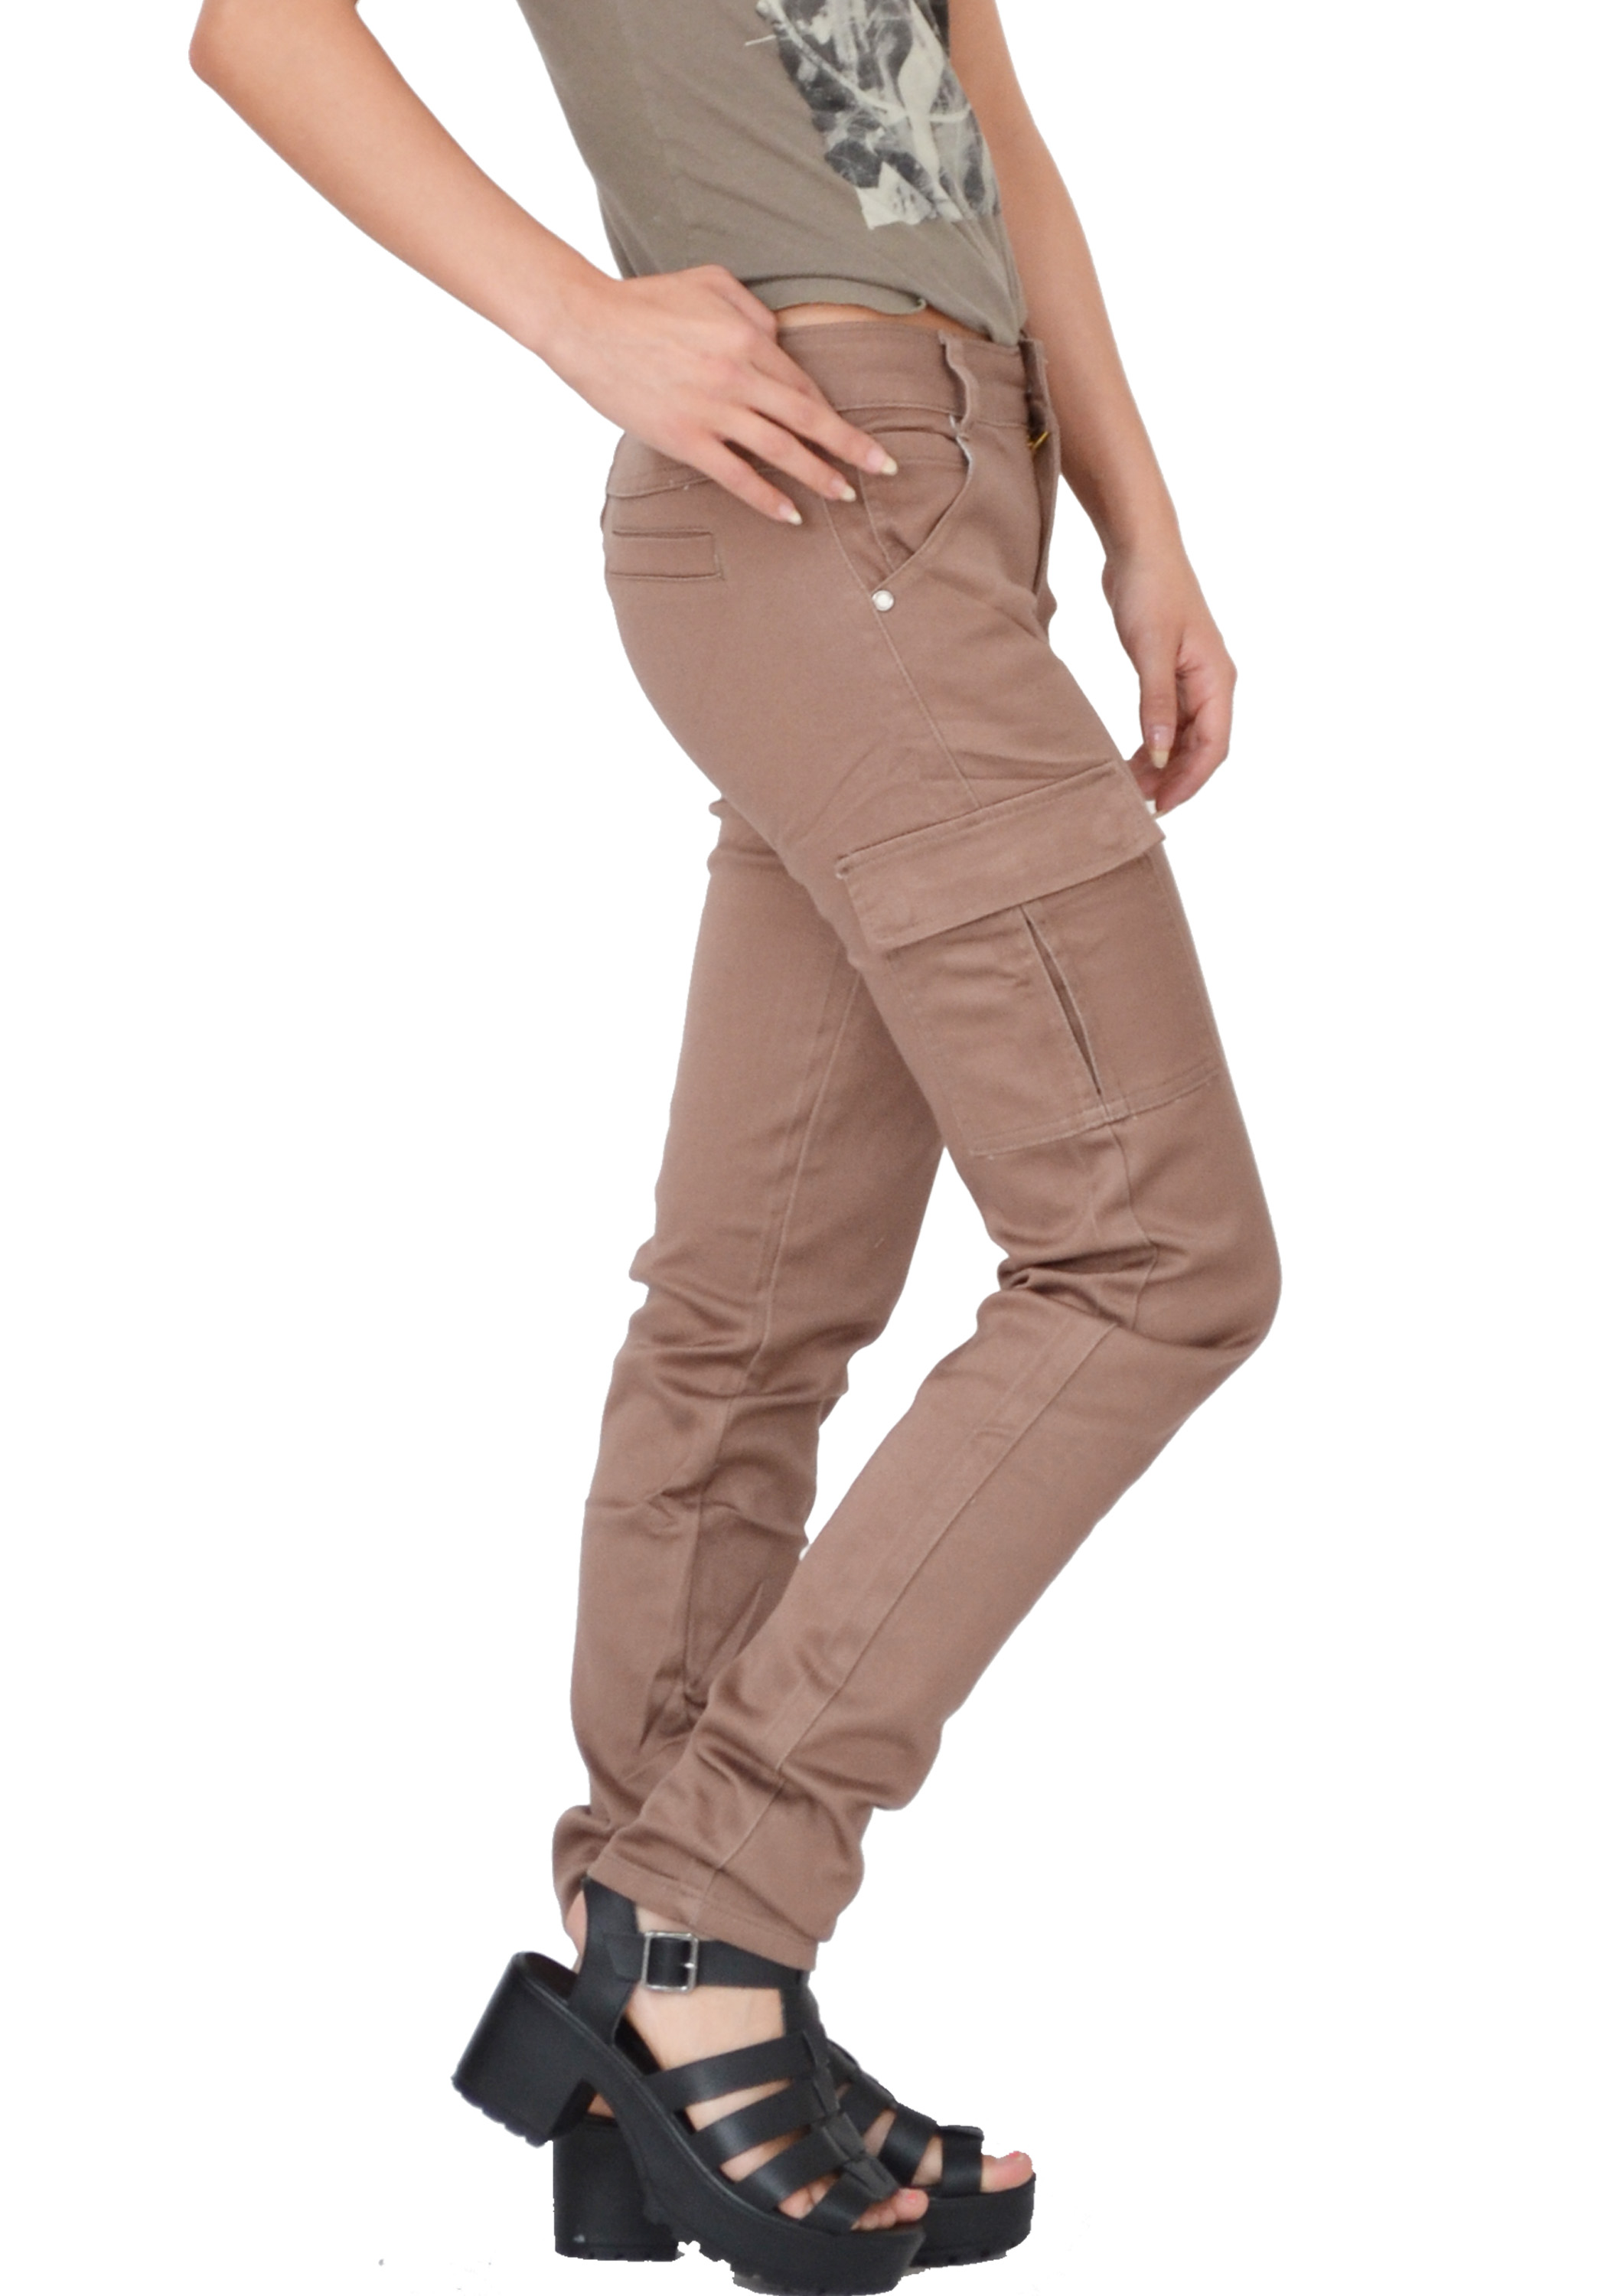 Elegant 29 Wonderful Brown Khaki Pants Womens U2013 Playzoa.com